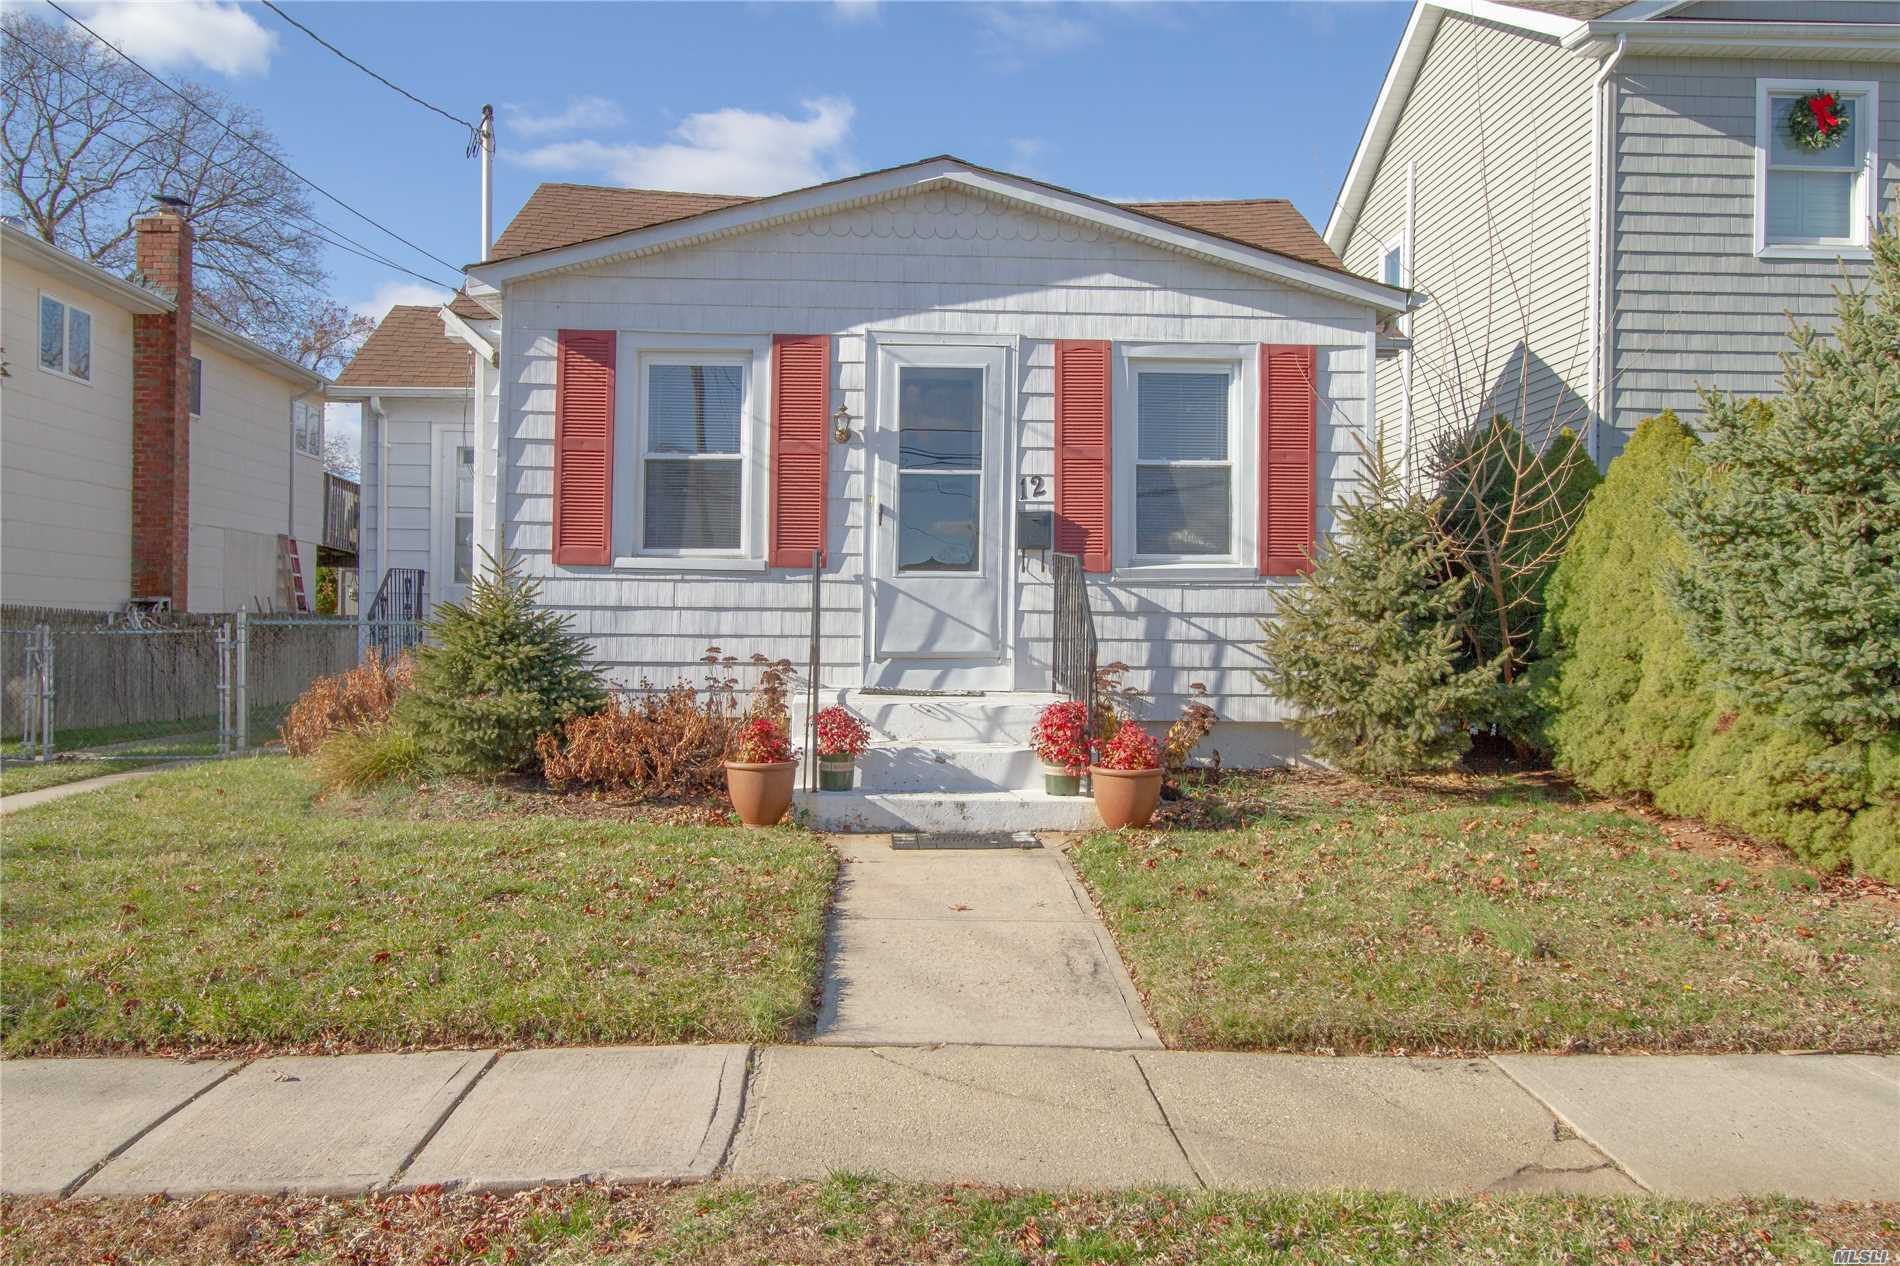 Amazing 2 Bedroom Bungalow Ranch Style House In The Heart Of N.Bellmore. Minutes To The Lirr, Restaurants And Great Schools. Spacious Backyard For Entertaining. House Is Very Energy Efficient. Lowest Priced House In N.Bellmore. This House Has Lots Of Potential And Will Not Last.